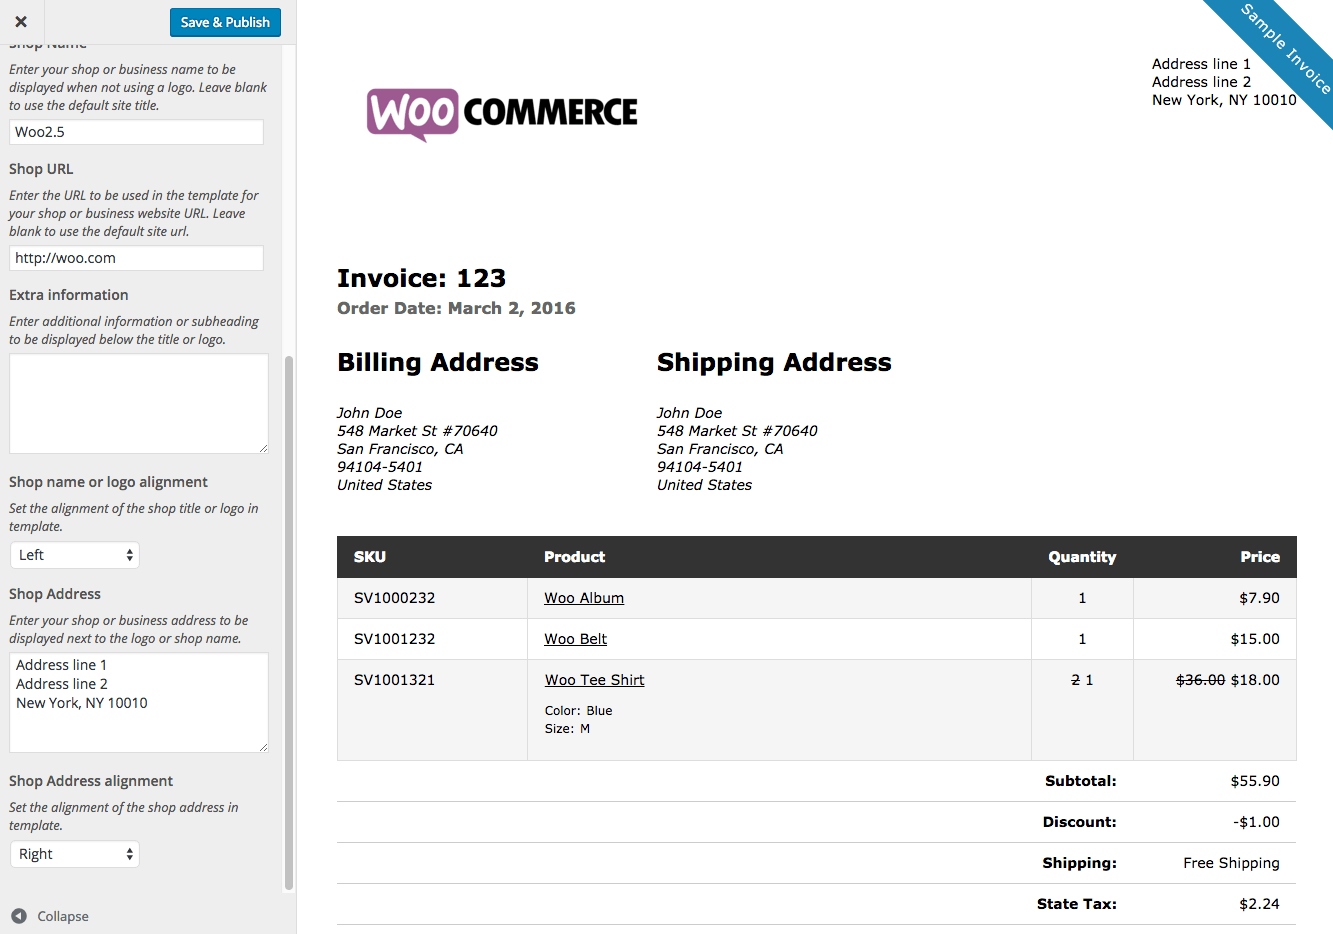 Reliefworkersus  Unusual Woocommerce Print Invoices Amp Packing Lists  Woocommerce Docs With Likable Woocommerce Print Invoices  Packing Lists Customizer With Amusing Sending Paypal Invoice Also Paypal Recurring Invoice In Addition What Is A Ebay Invoice And Proforma Invoices As Well As Ups Paperless Invoice Additionally Invoice Factoring Rates From Docswoocommercecom With Reliefworkersus  Likable Woocommerce Print Invoices Amp Packing Lists  Woocommerce Docs With Amusing Woocommerce Print Invoices  Packing Lists Customizer And Unusual Sending Paypal Invoice Also Paypal Recurring Invoice In Addition What Is A Ebay Invoice From Docswoocommercecom